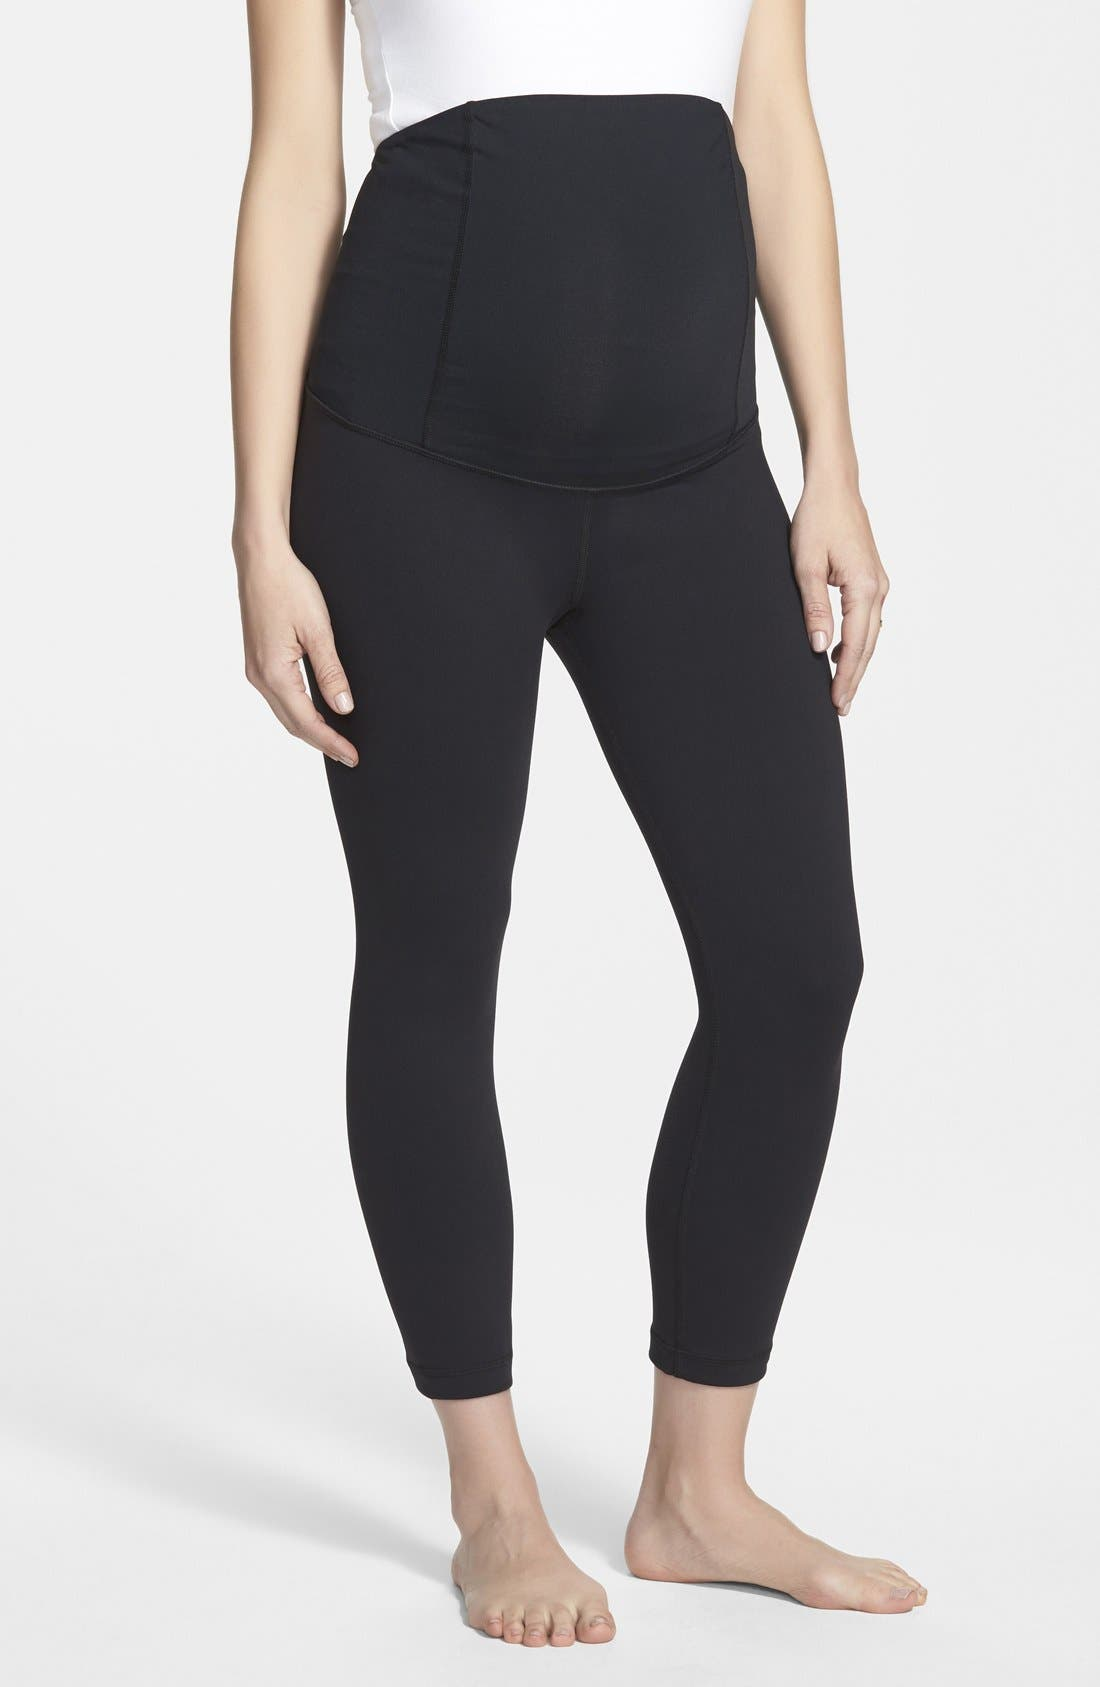 Alternate Image 1 Selected - Ingrid & Isabel® Active Maternity Capri Pants with Crossover Panel